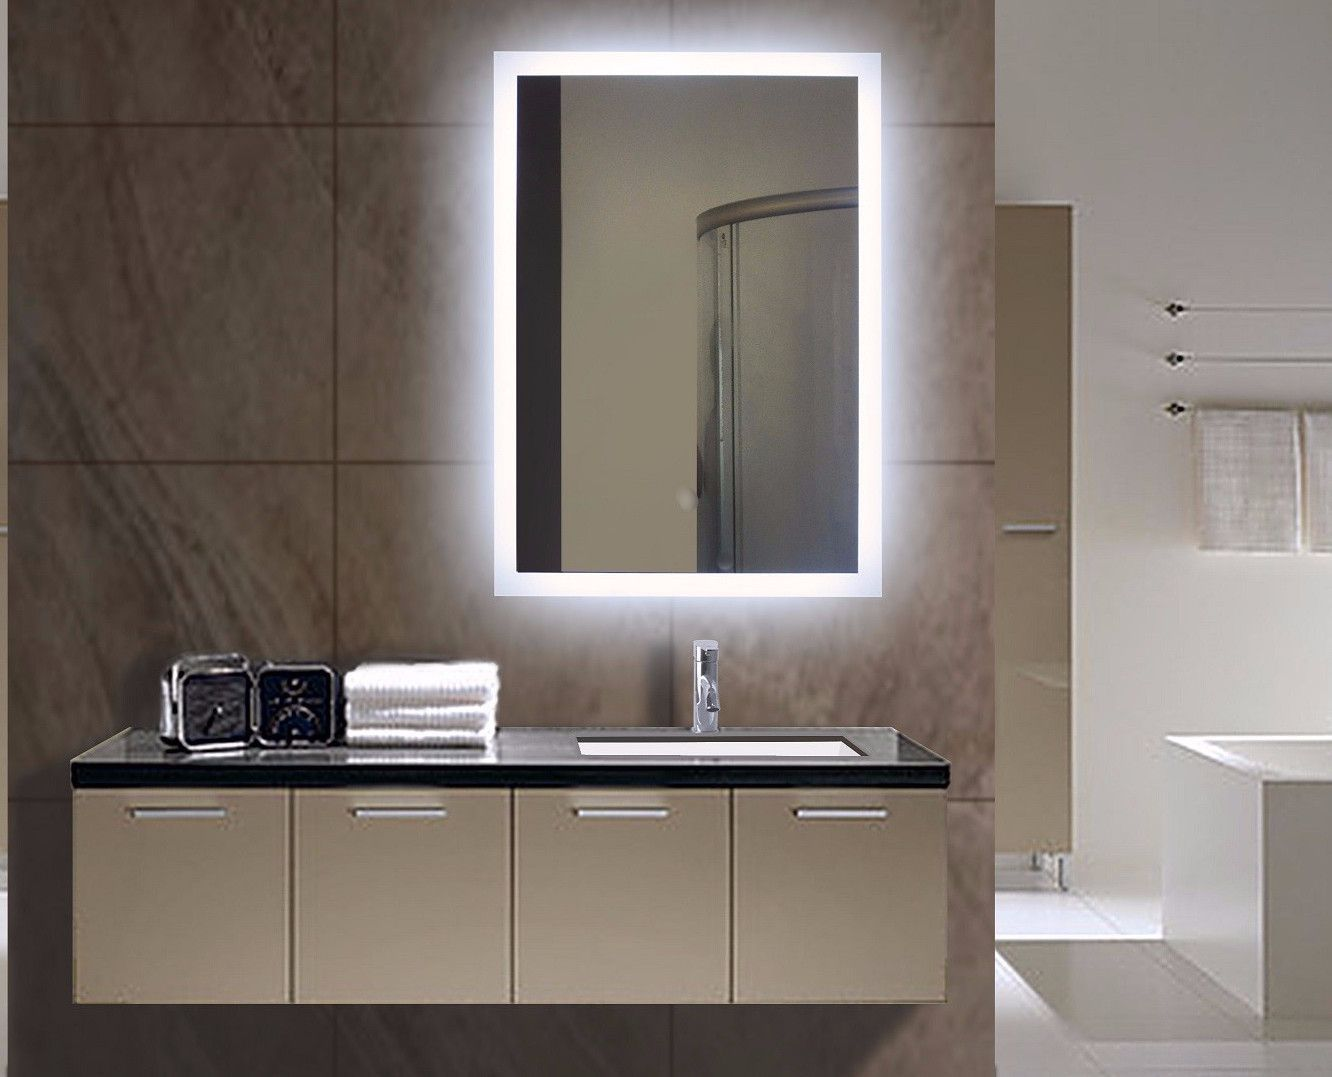 Dimmable backlit mirror rectangle 20 x 28 backlit mirror bath dimmable backlit mirror rectangle 20 x 28 xflitez Images